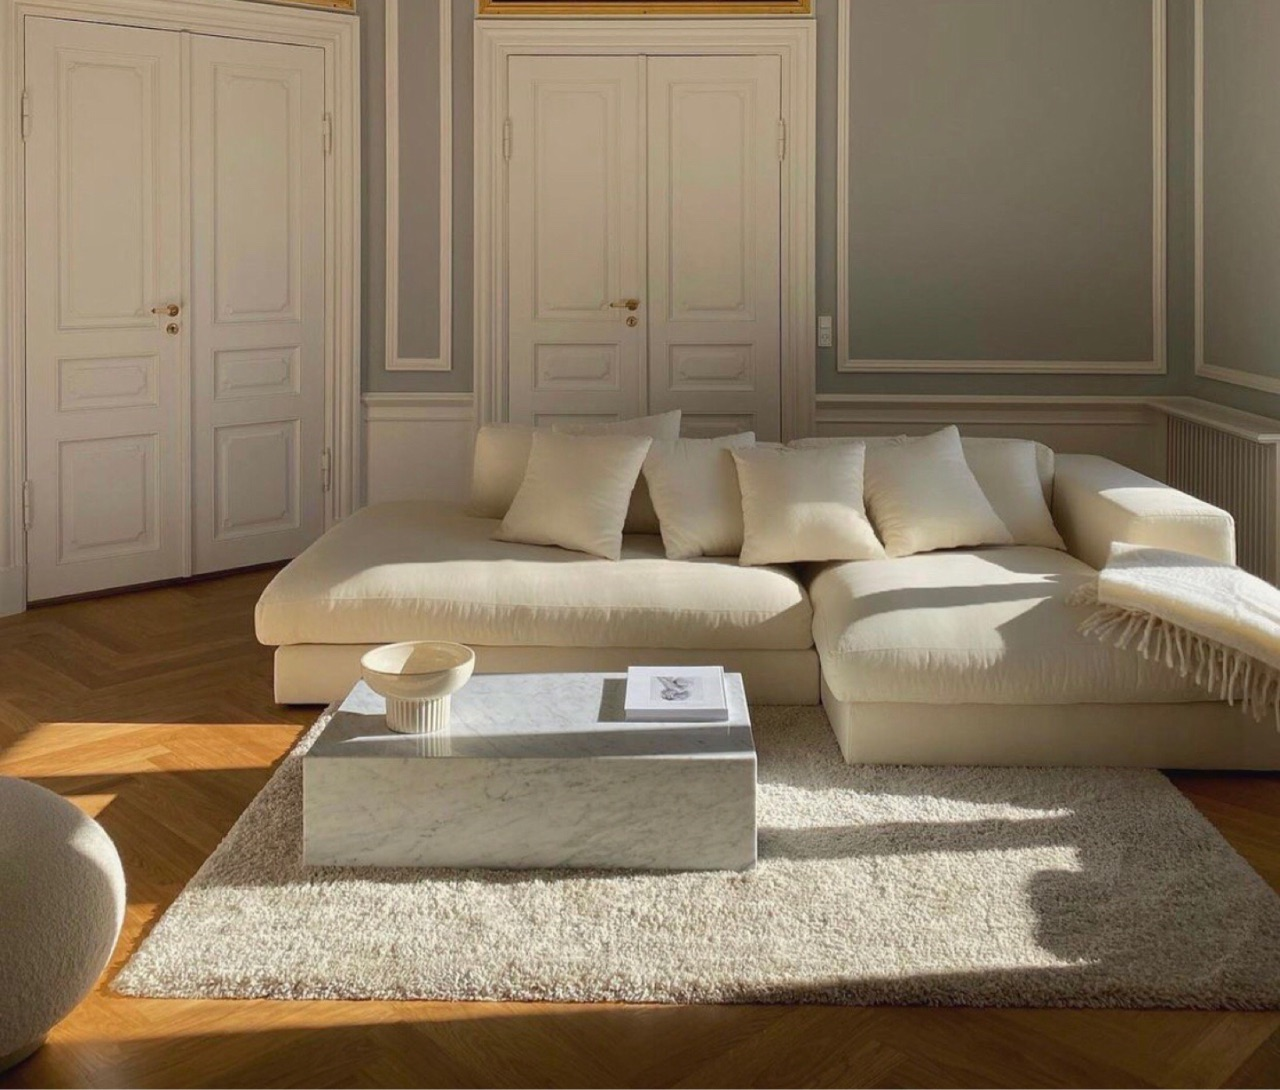 architecture, interior design, and home house image